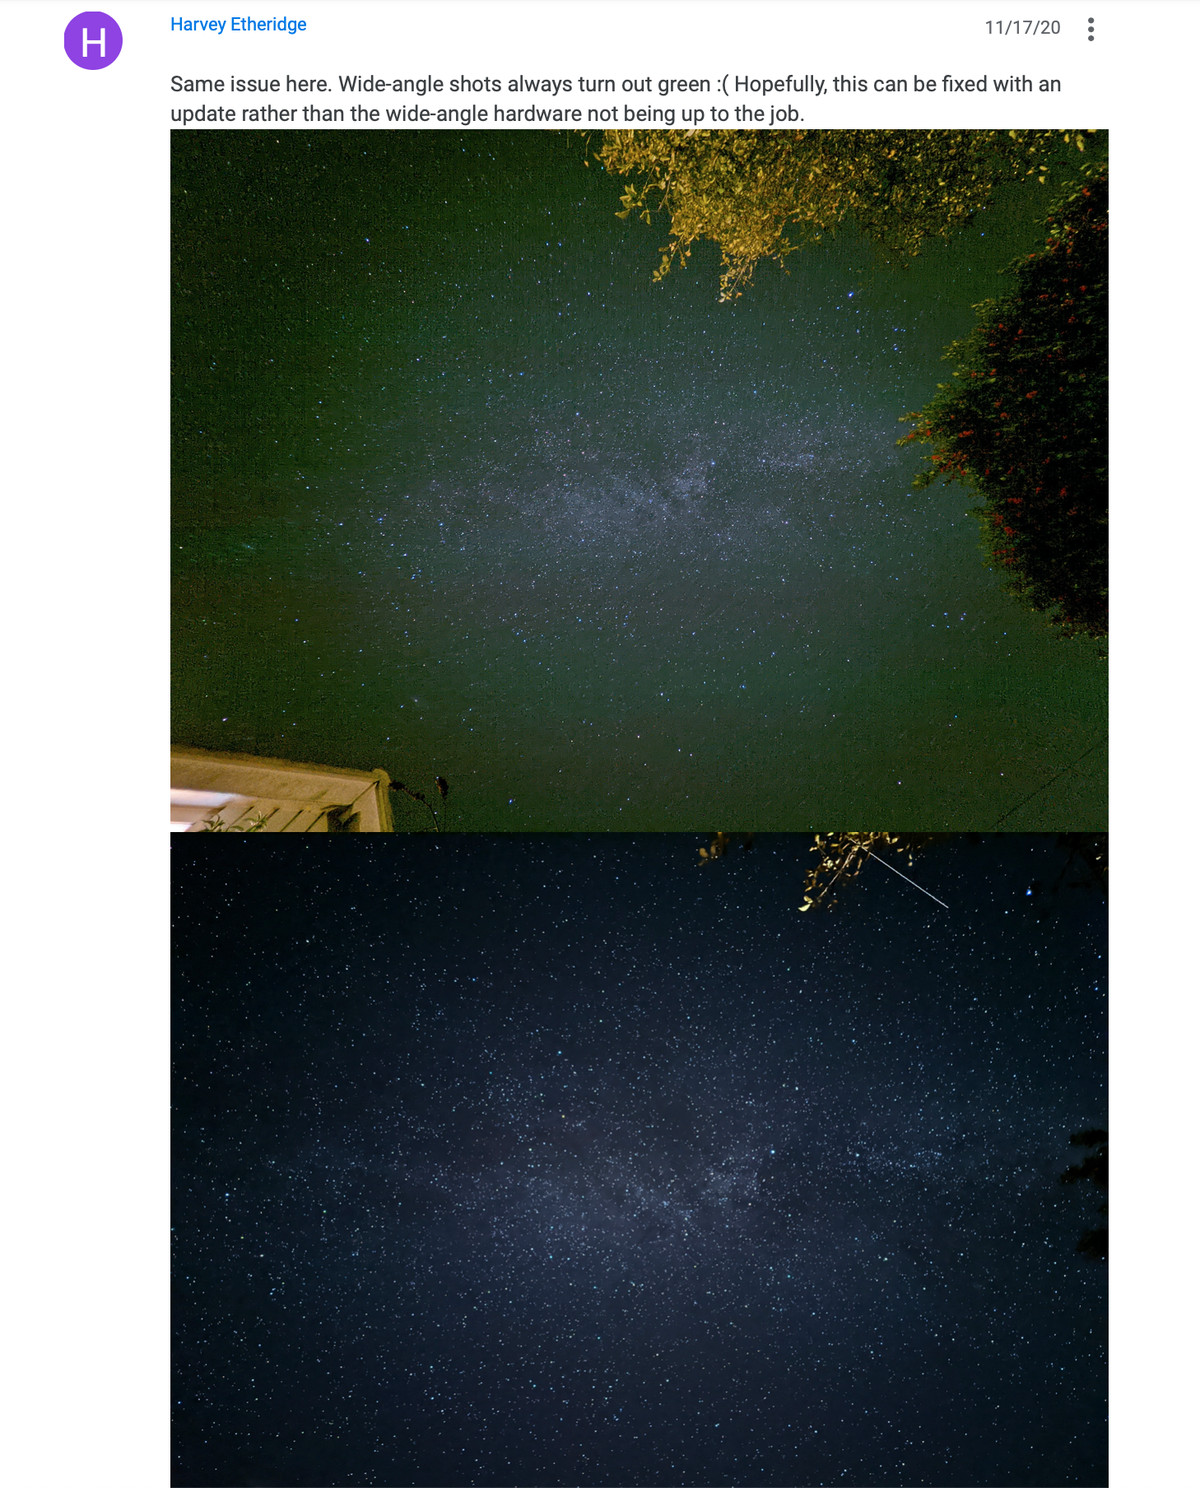 A screenshot of a forum post comparing the two camera's results in astrophotography mode.